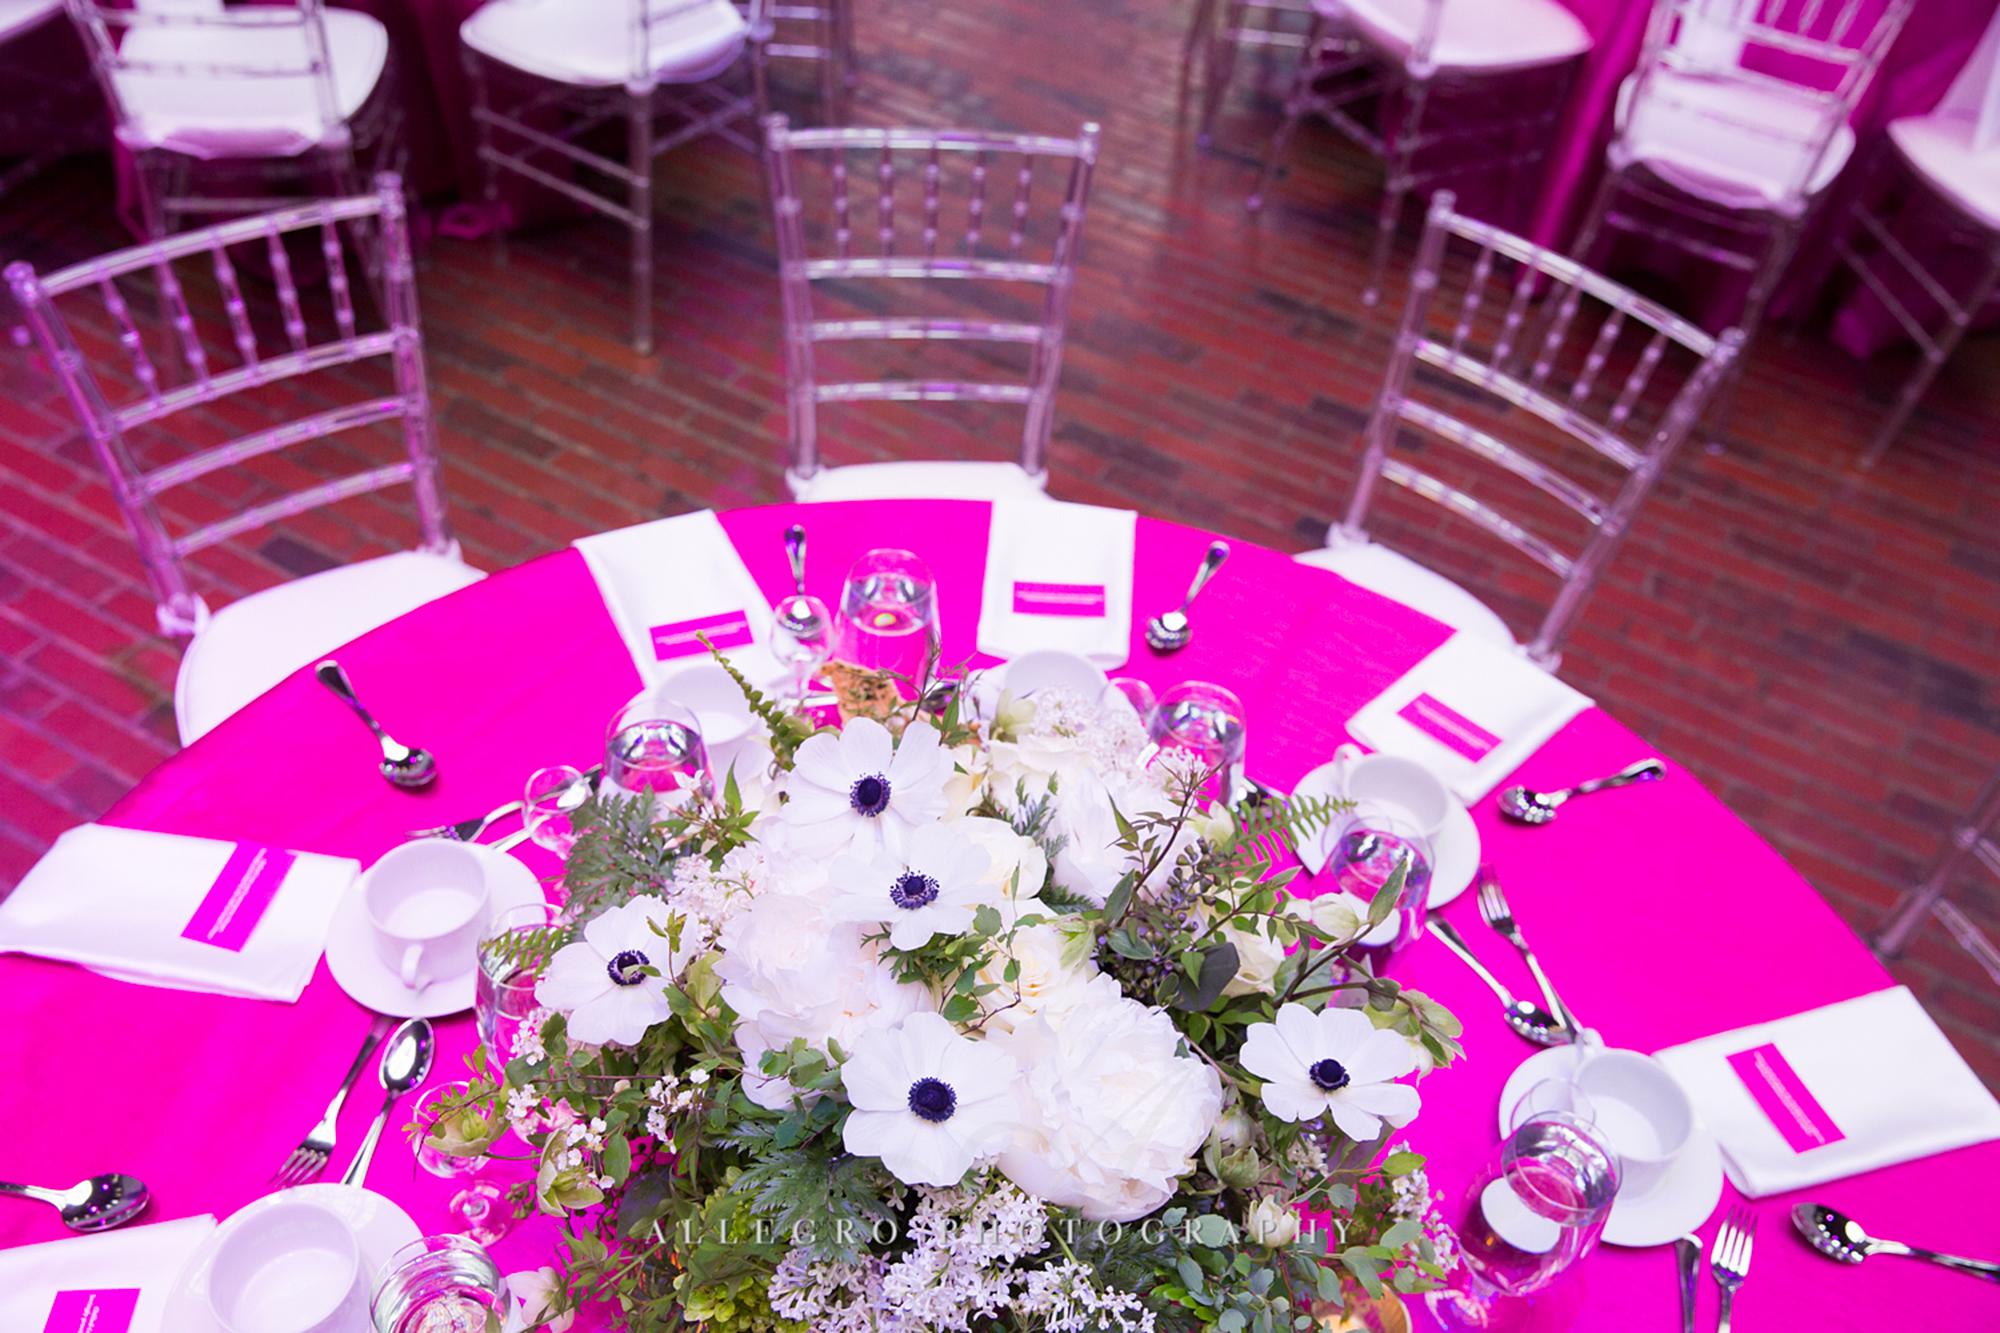 01_Rosies Place Gala Nonprofit Pink Decor_AE Events.jpg